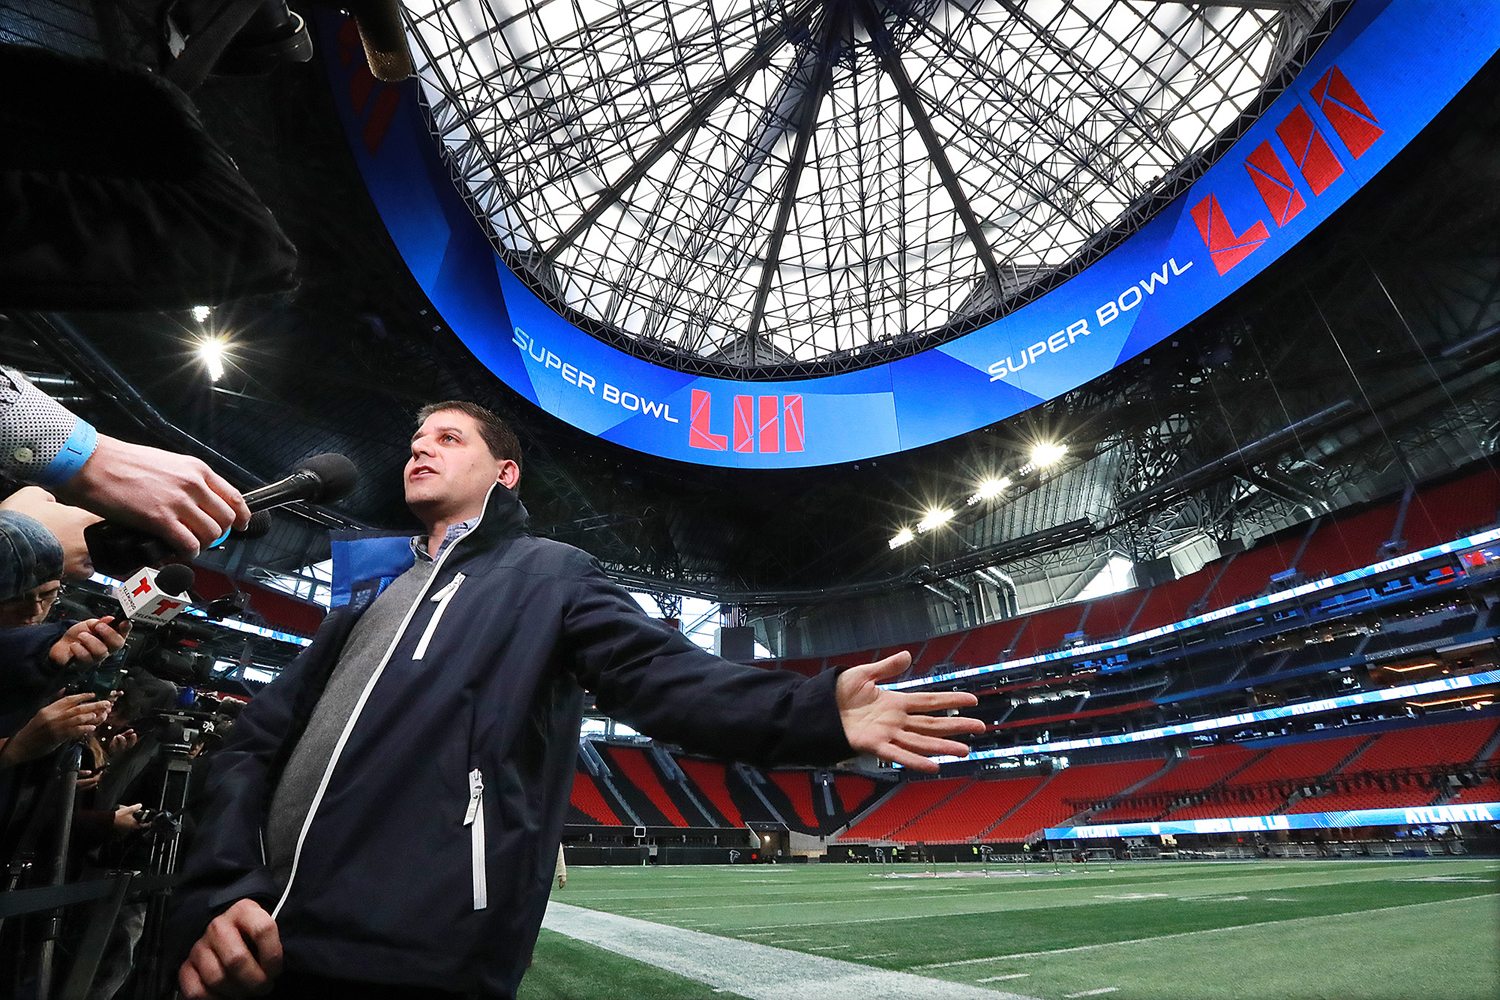 NFL senior director of event operations Eric Finkelstein takes questions from the media during a Super Bowl photo and interview opportunity inside the Mercedes-Benz Stadium in Atlanta during preparation for the game on Jan. 22.